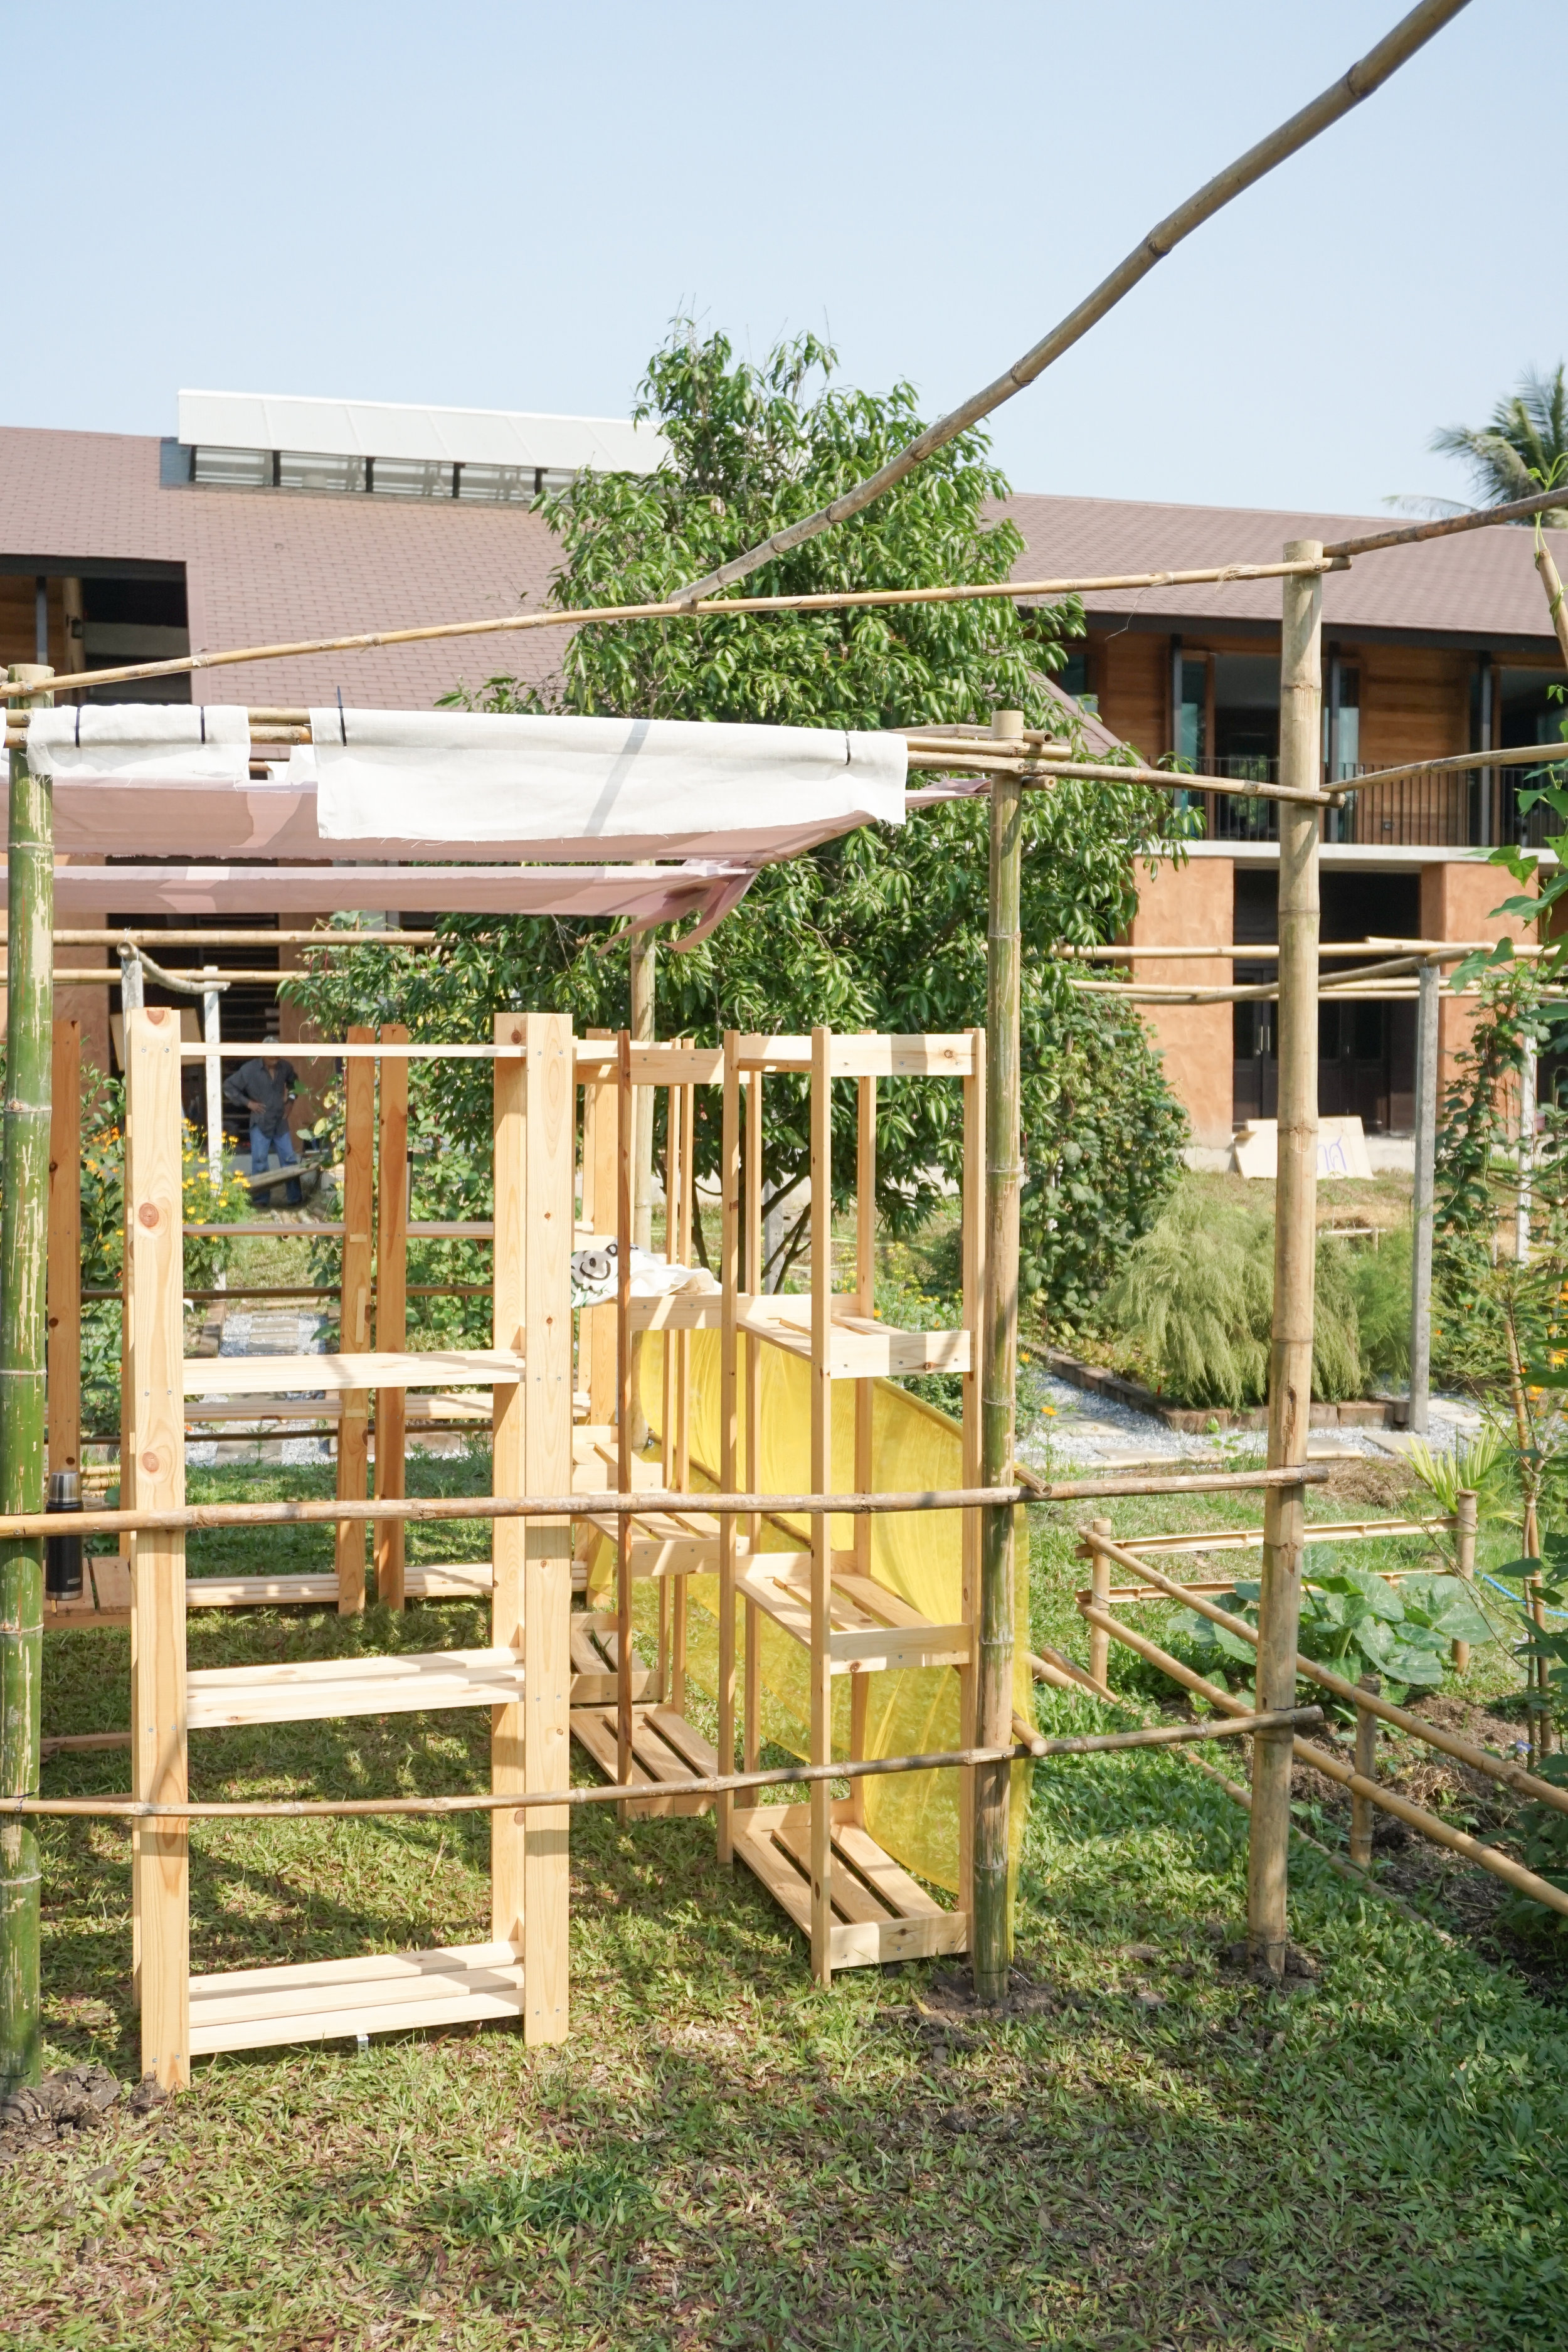 Building the booths at Thai City Farm Festival using natural materials